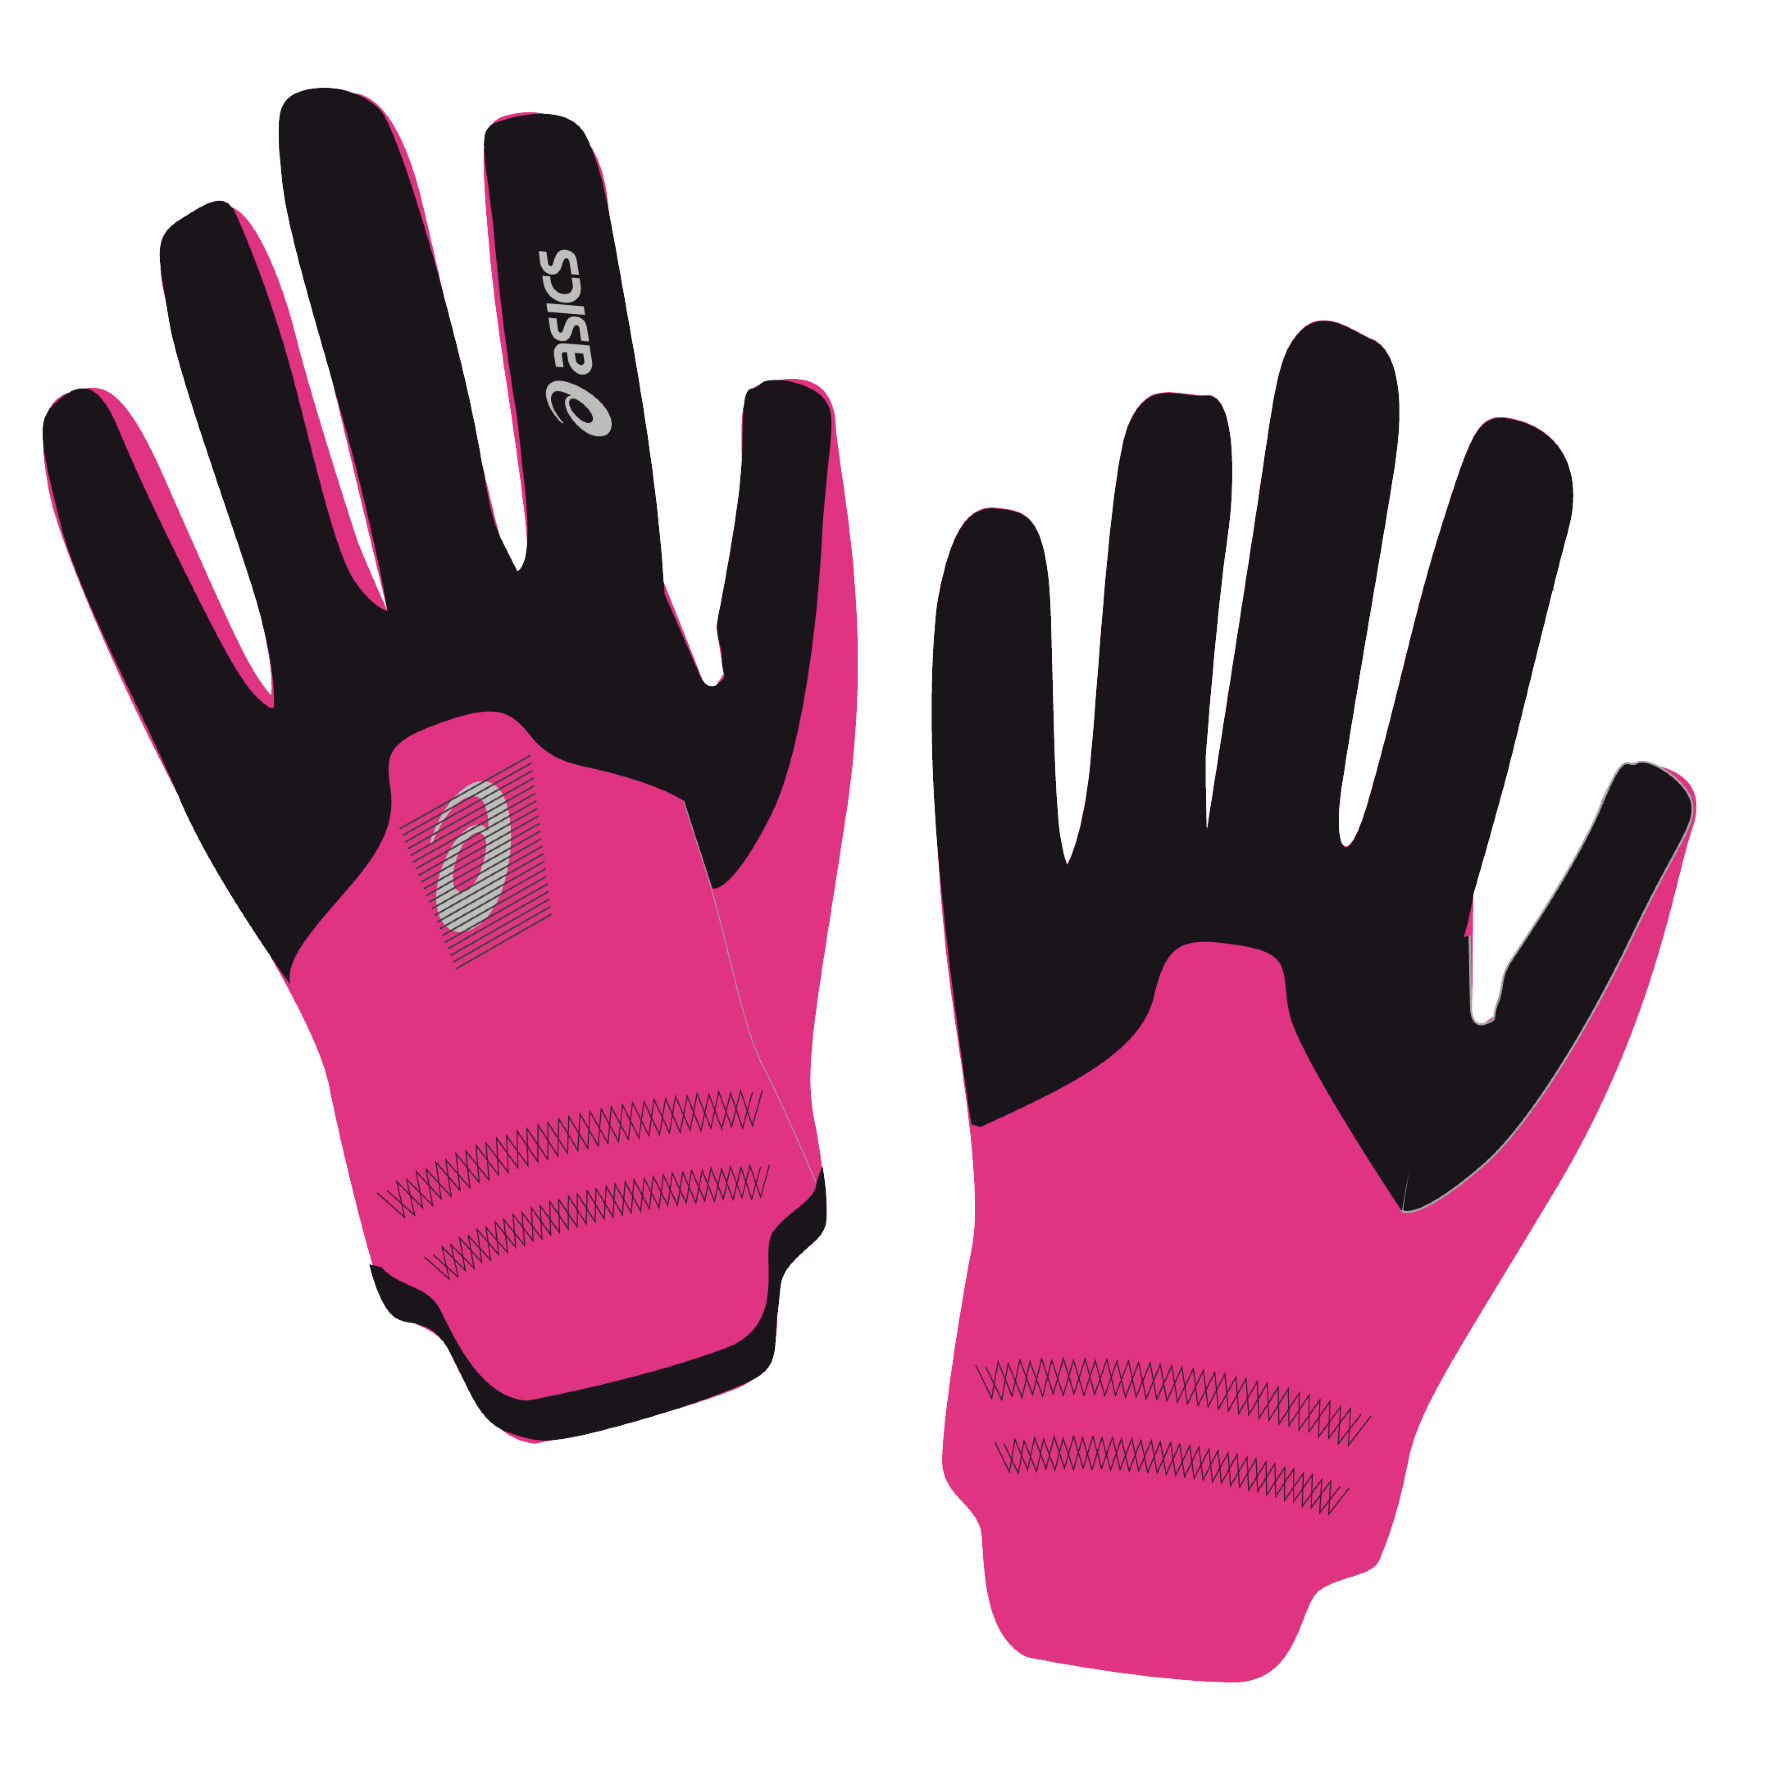 Asics Winter Glove in Schwarz Pink